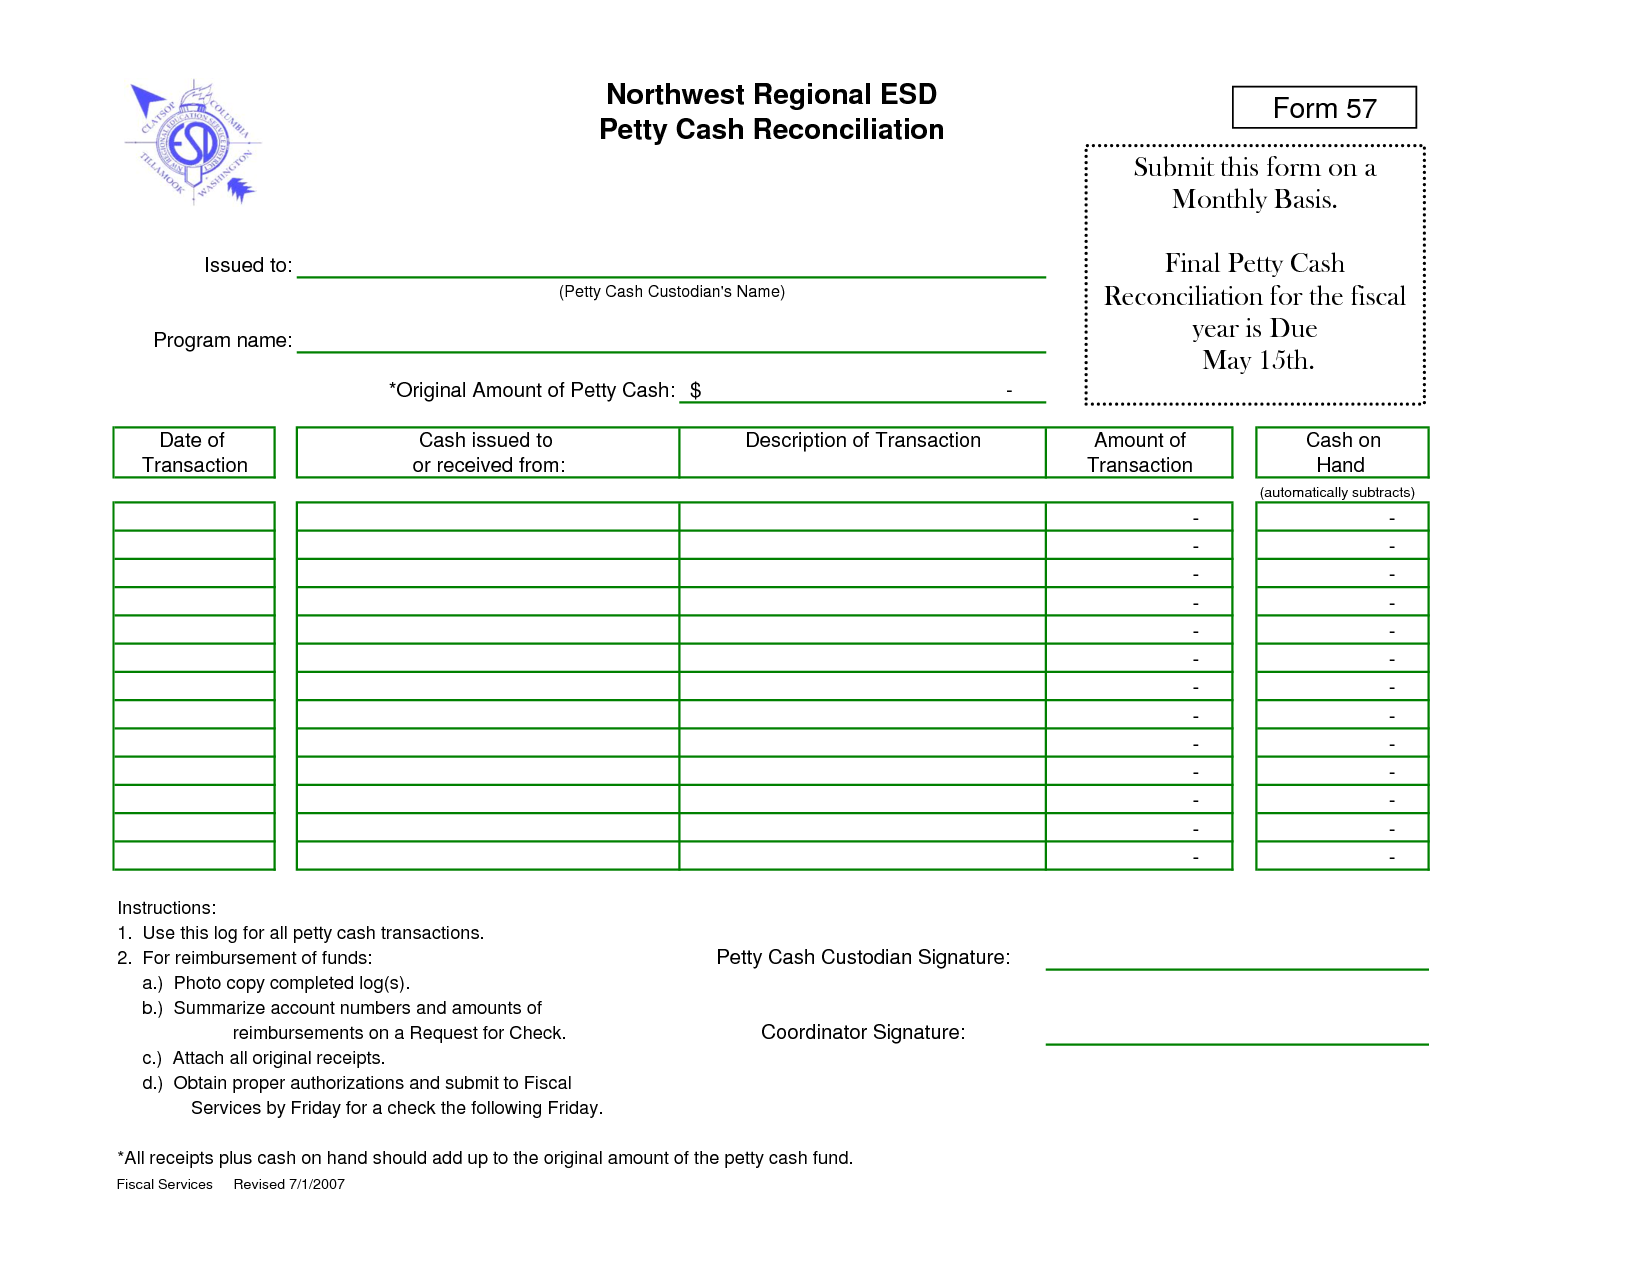 Petty Cash Reconciliation   Fill Online, Printable, Fillable